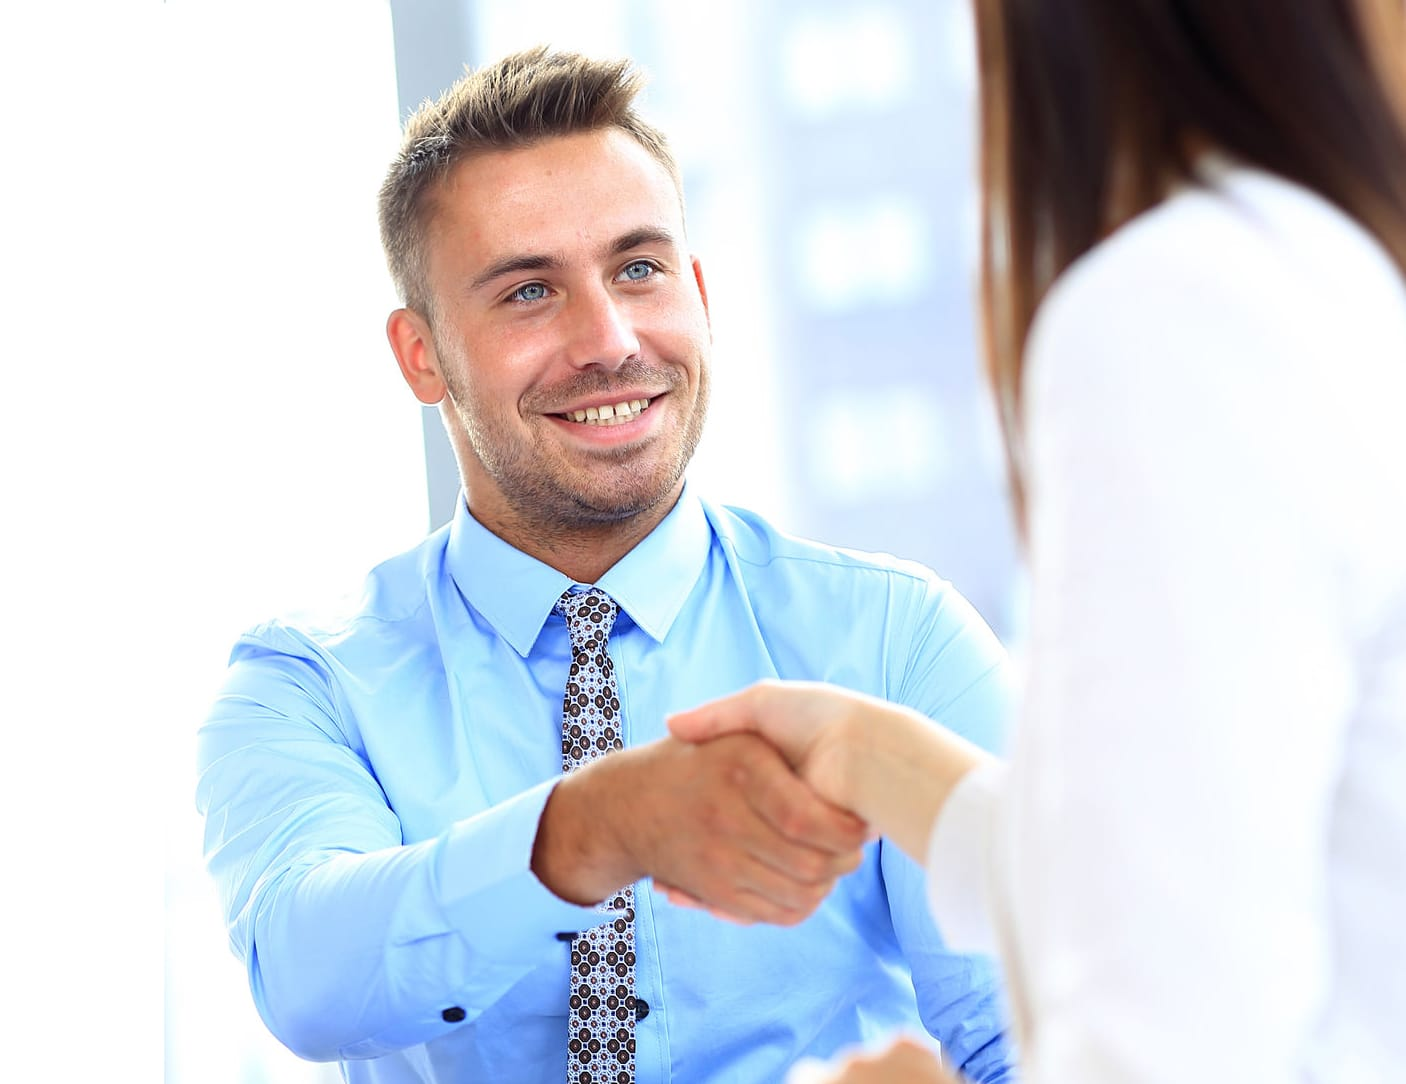 51567863 - businessman shaking hands to seal a deal with his partner